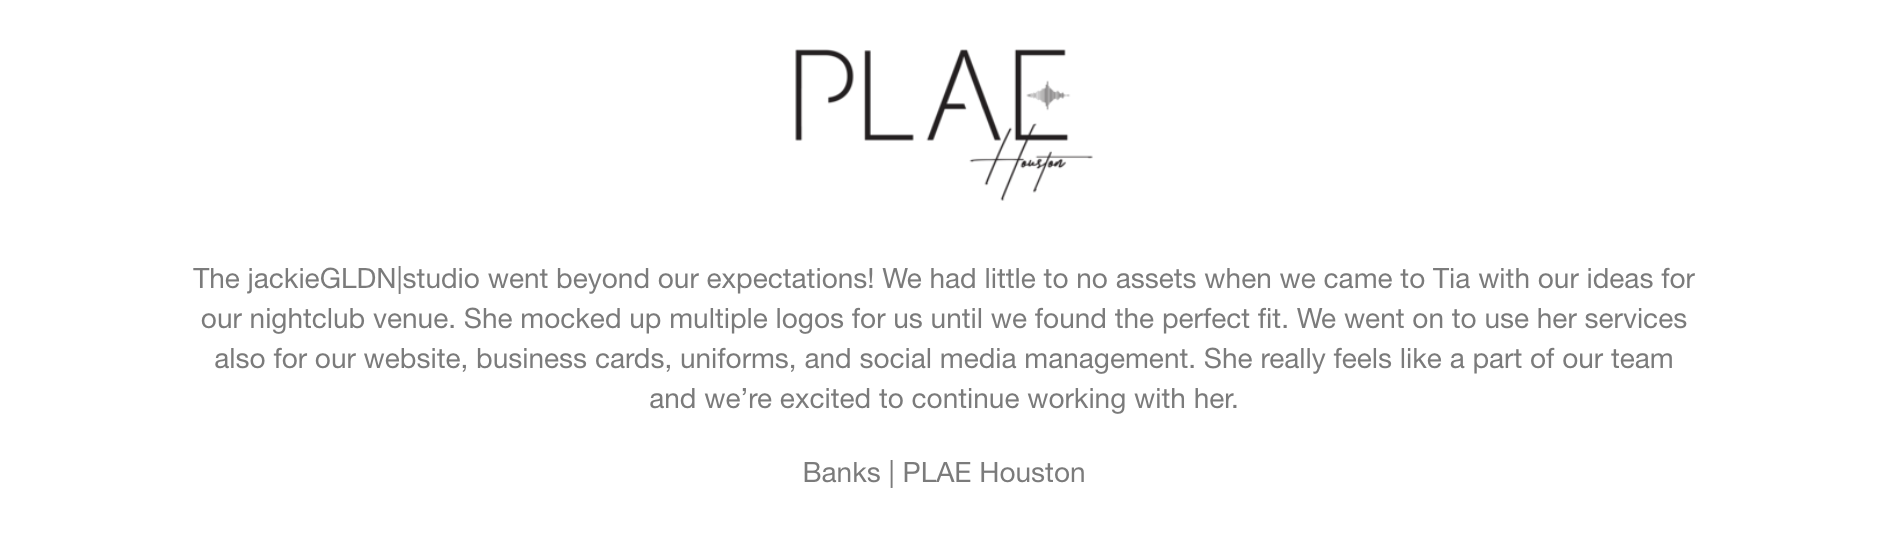 PLAE HOUSTON NIGHTCLUB.png